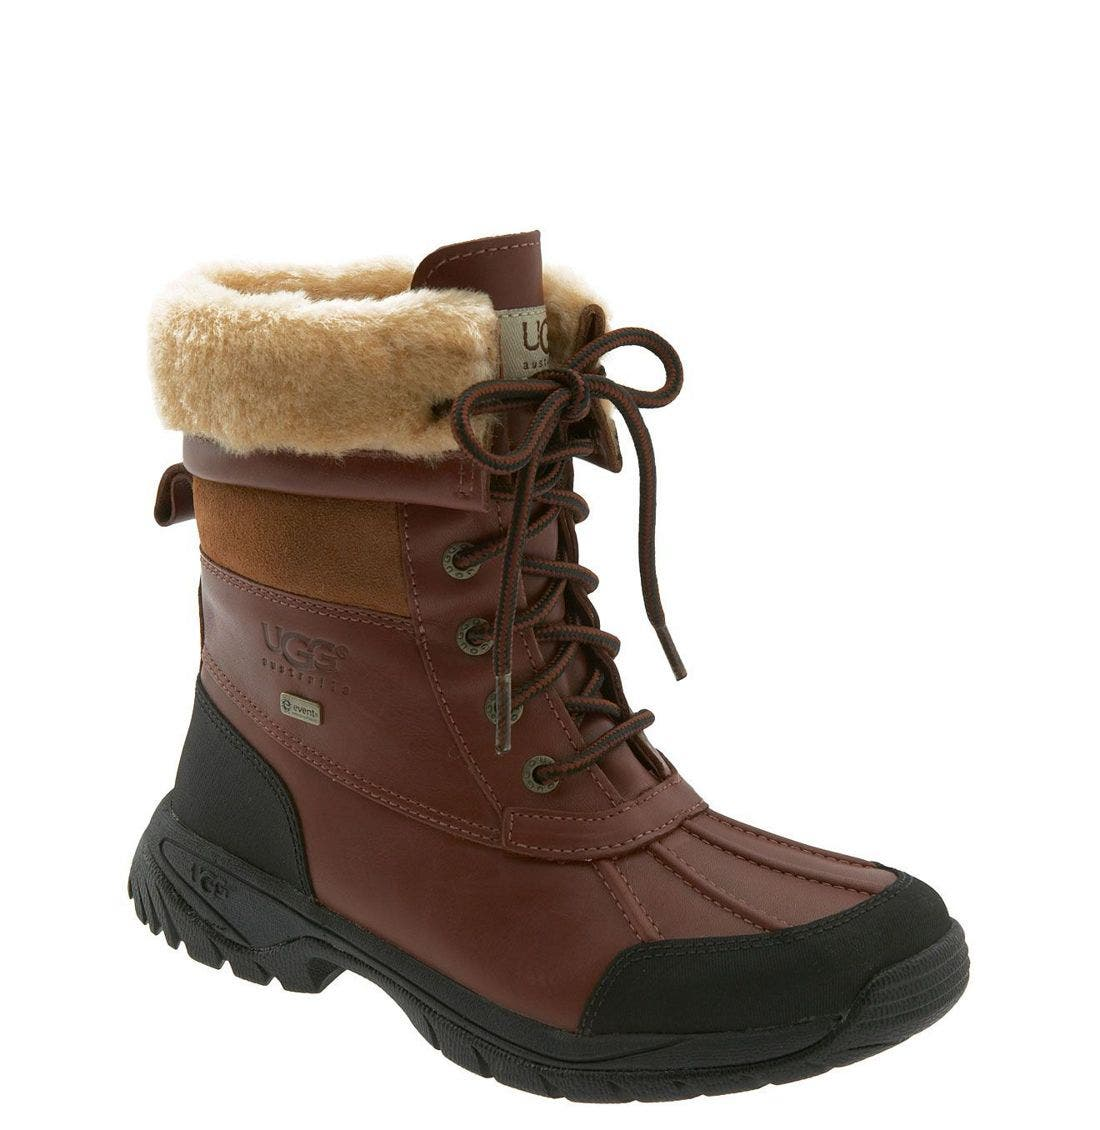 Alternate Image 1 Selected - UGG® Australia 'Butte' Boot (Little Kid & Big Kid)